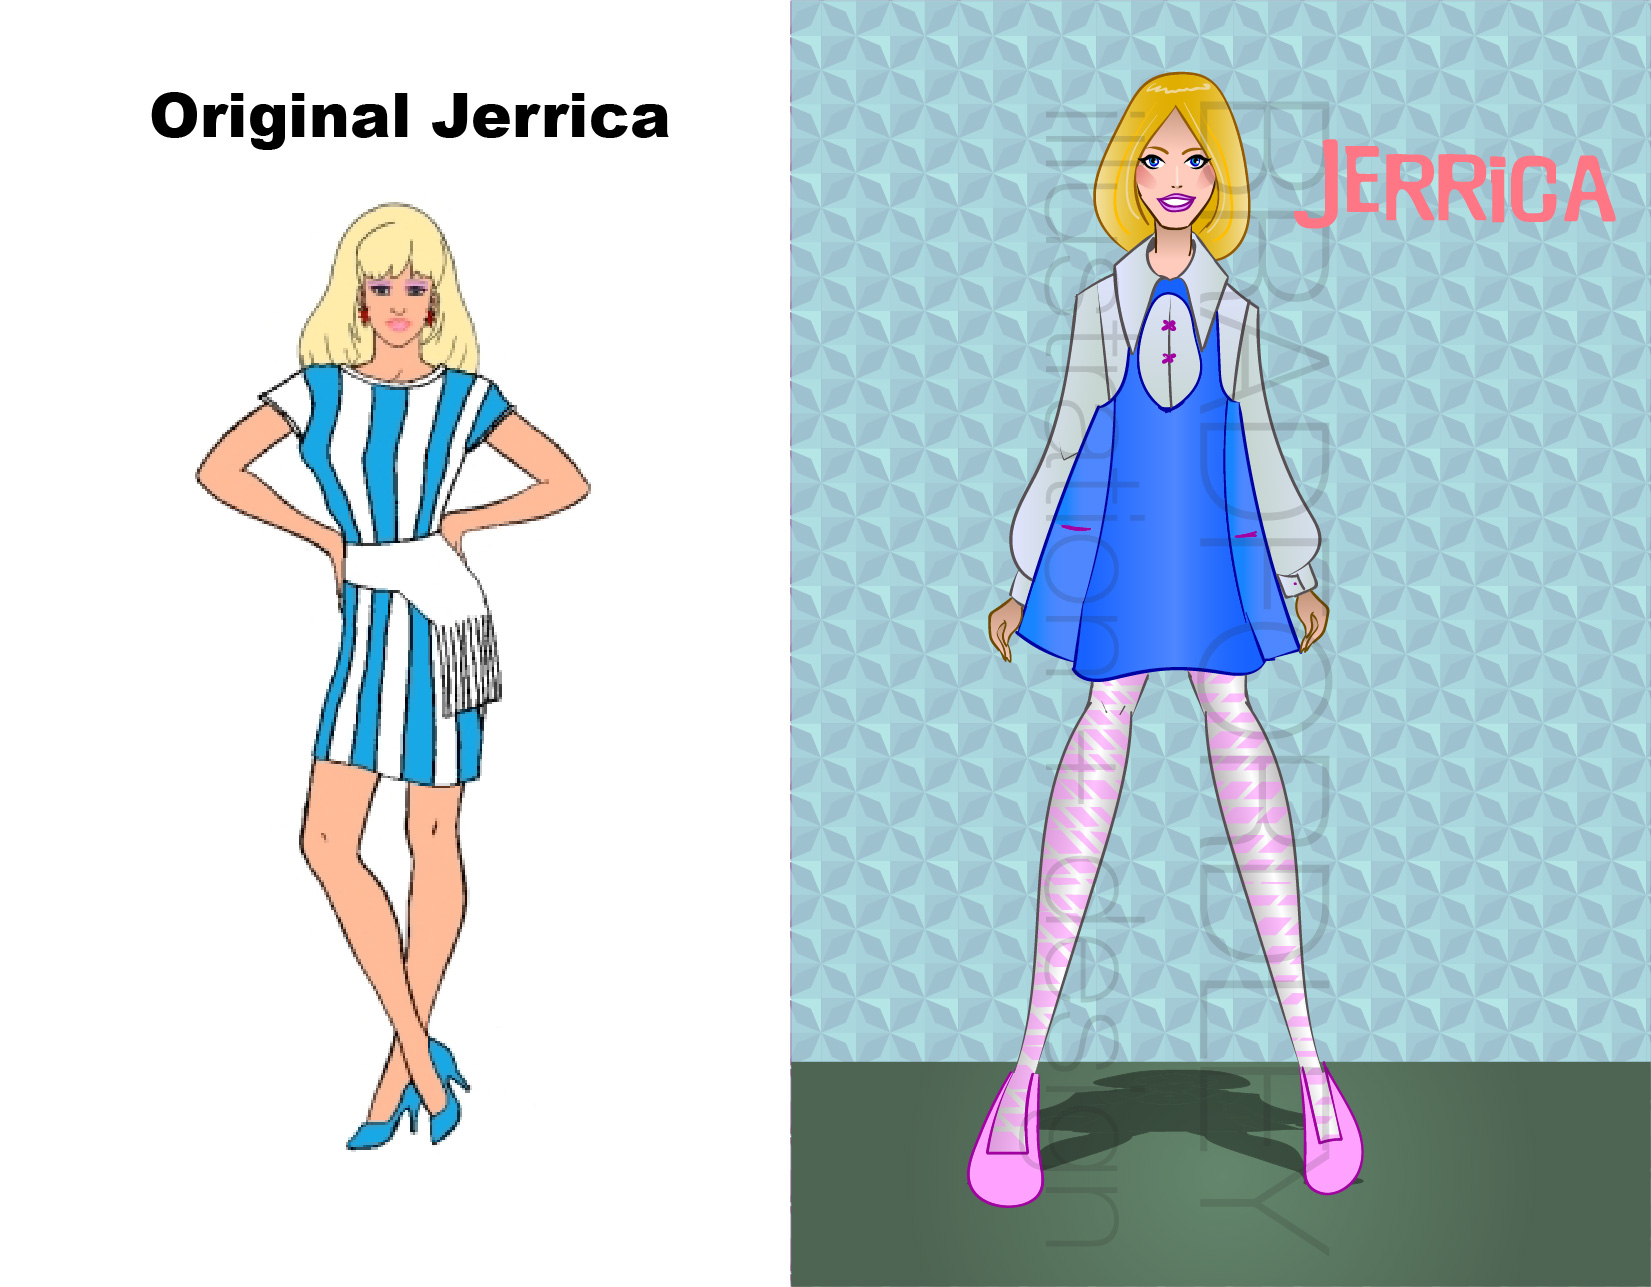 """Here's our titular lady herself, only when she's not disguised as Jem. I wanted to really differentiate the two a bit more than the cartoon did. It also gave me the chance to do a less """"outrageous"""" look and something more casual, and I'm pleased with the look. I also really dialed back the makeup.Now Jerrica, tell Rio you're Jem already, jeez."""